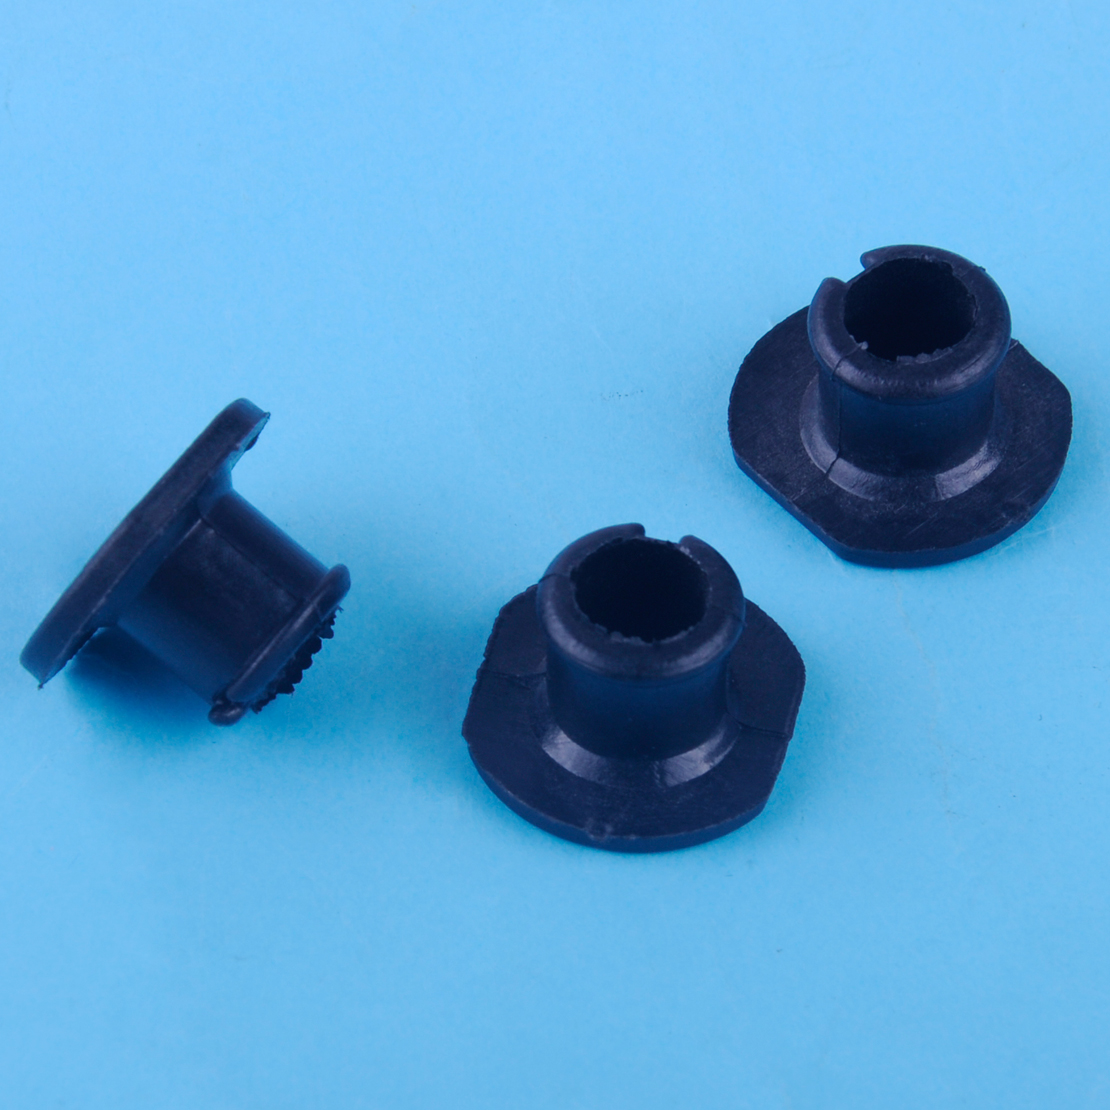 LETAOSK High Quality 3Pcs Buffer Plug Cap Fit For Stihl 017 018 021 023 025 029 039 MS230 MS250 Chainsaw